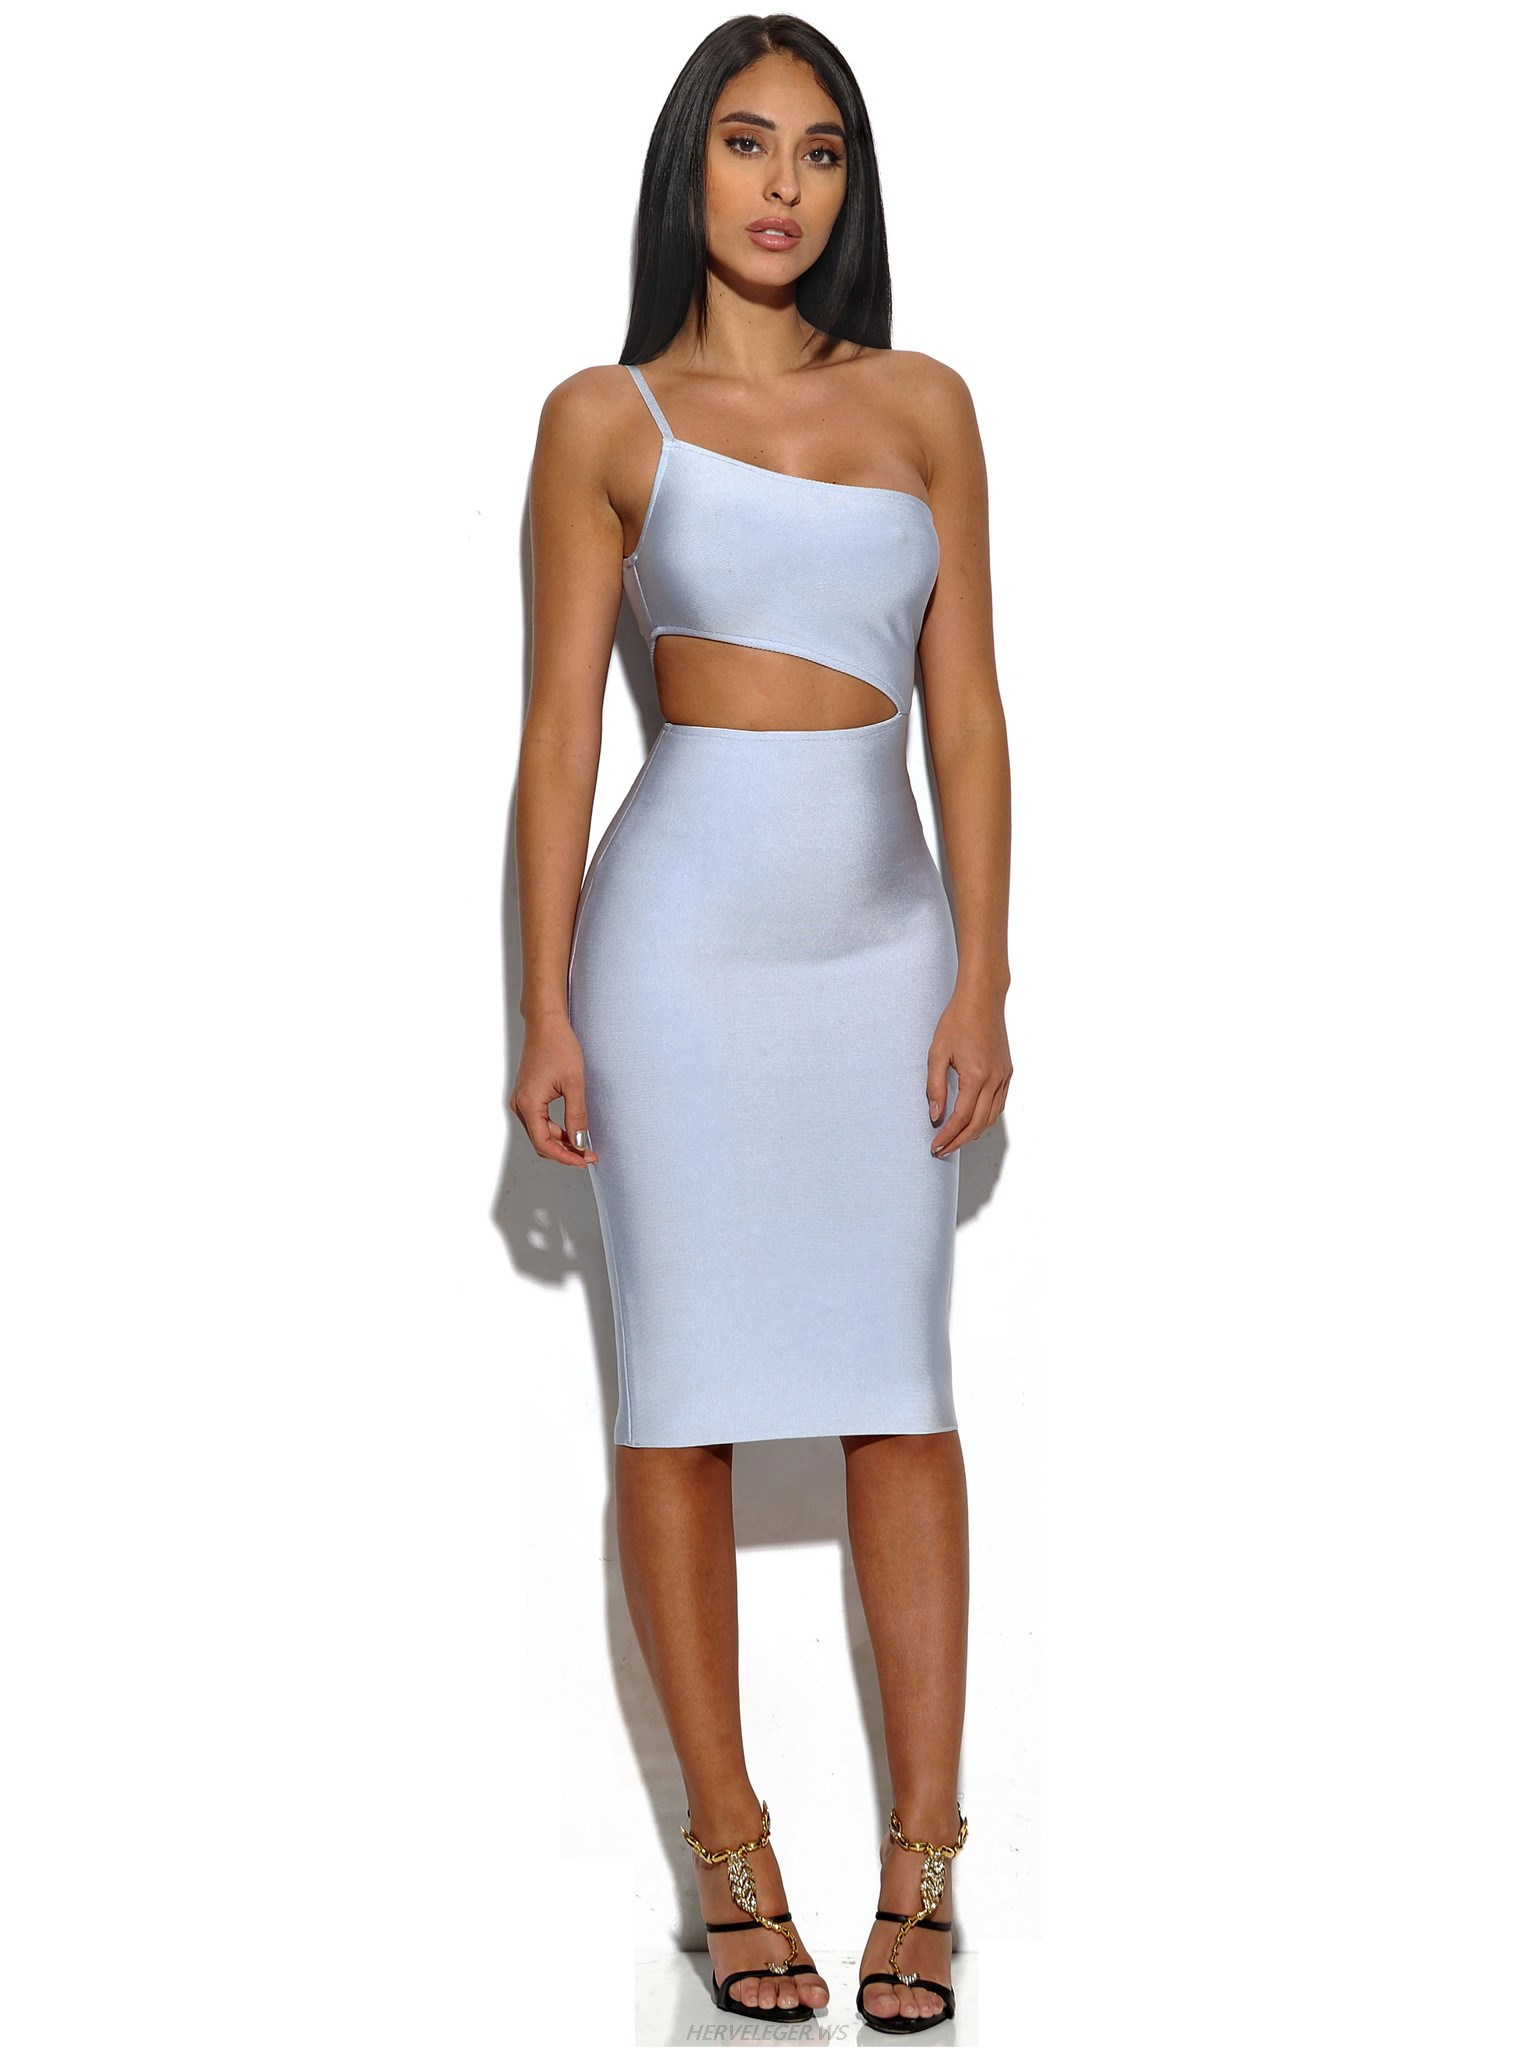 Herve Leger Ice Blue One Shoulder Asymmetric Cutout Dress